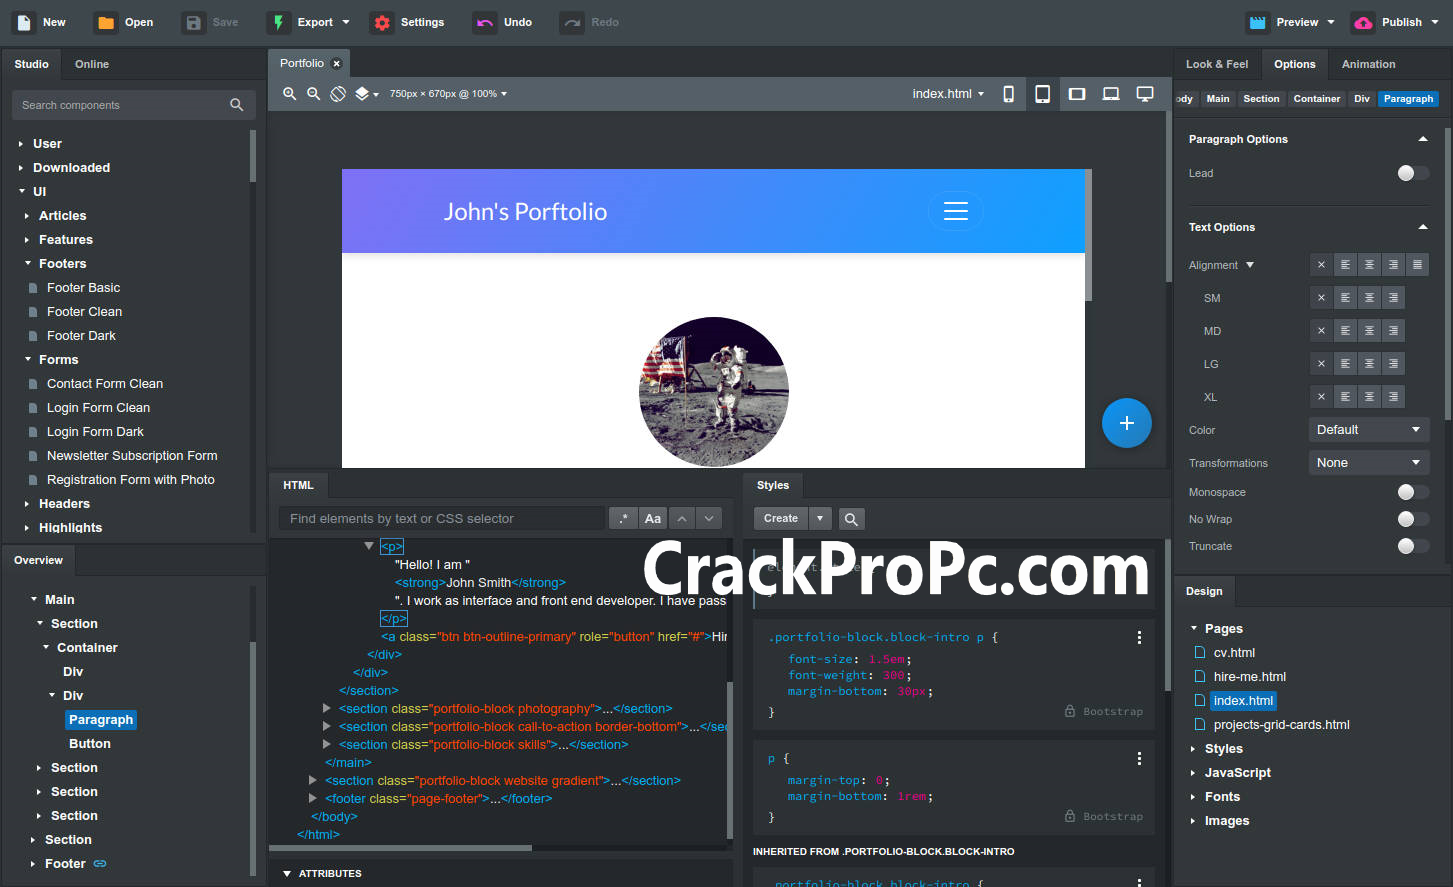 Bootstrap Studio Professional v5.0.3 Crack License Key Full Version [2020]